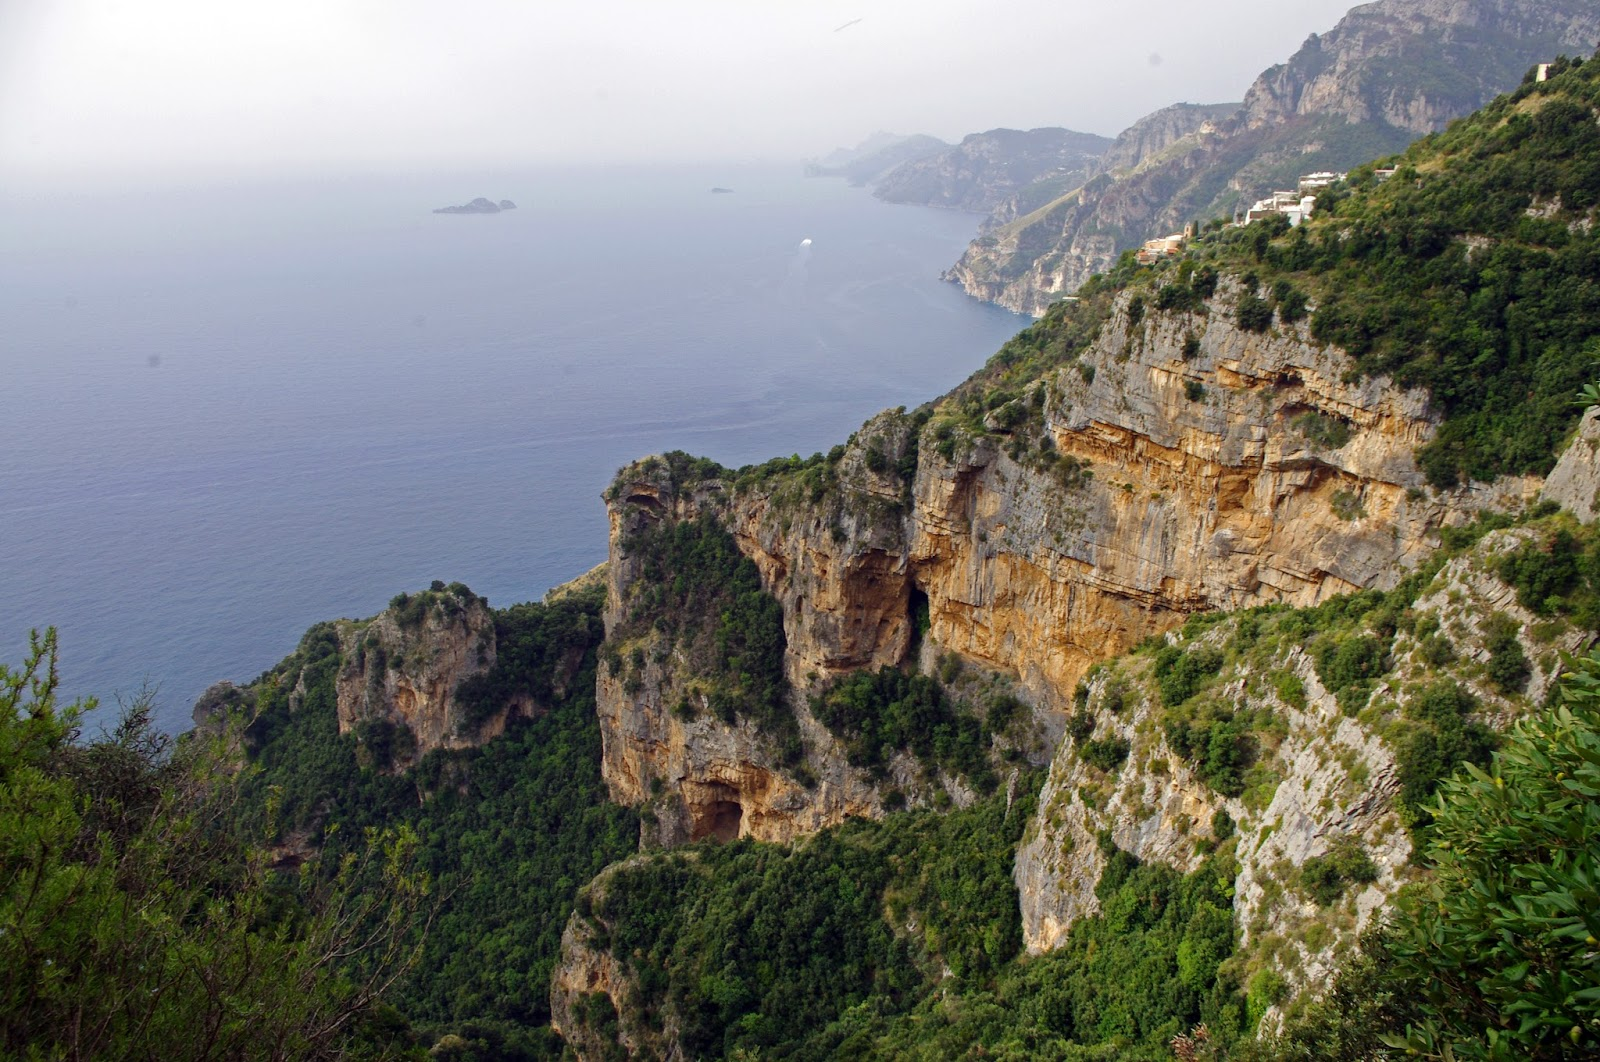 Views of Amalfi Coast from Walk of the Gods